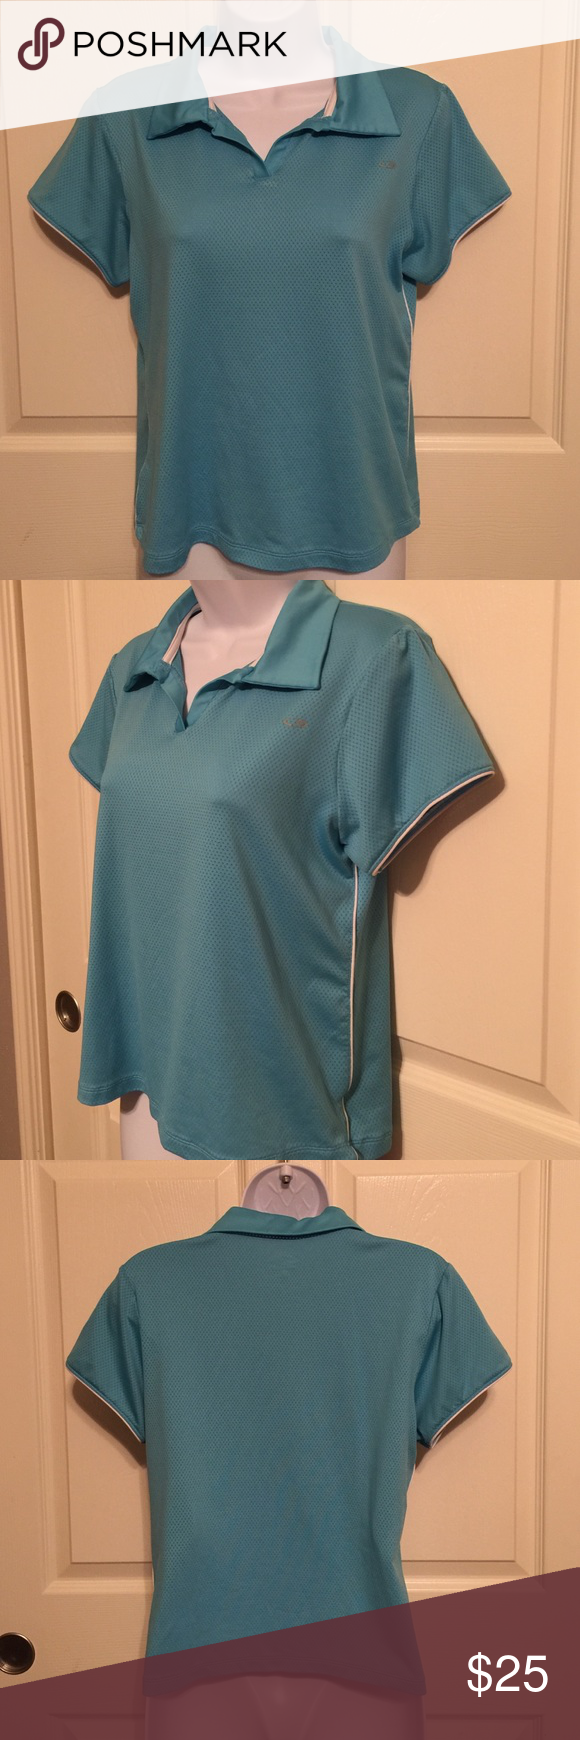 Champion Sport shirt medium aqua blue ladies teens Champion sports aqua blue medium teens ladies shirt 👚 preowned in excellent condition.   Check out my closet, we have a lot of Victoria Secret, Bath and Body Works, handbags, Aerosoles, shoes, fashion jewelry, women's clothing, Beauty products, home decors & more...  Ships via USPS. We offer bundle discounts. And don't forget your FREE GIFT with every purchase!!! Thank you & Happy Poshing!!! Champion Tops Crop Tops